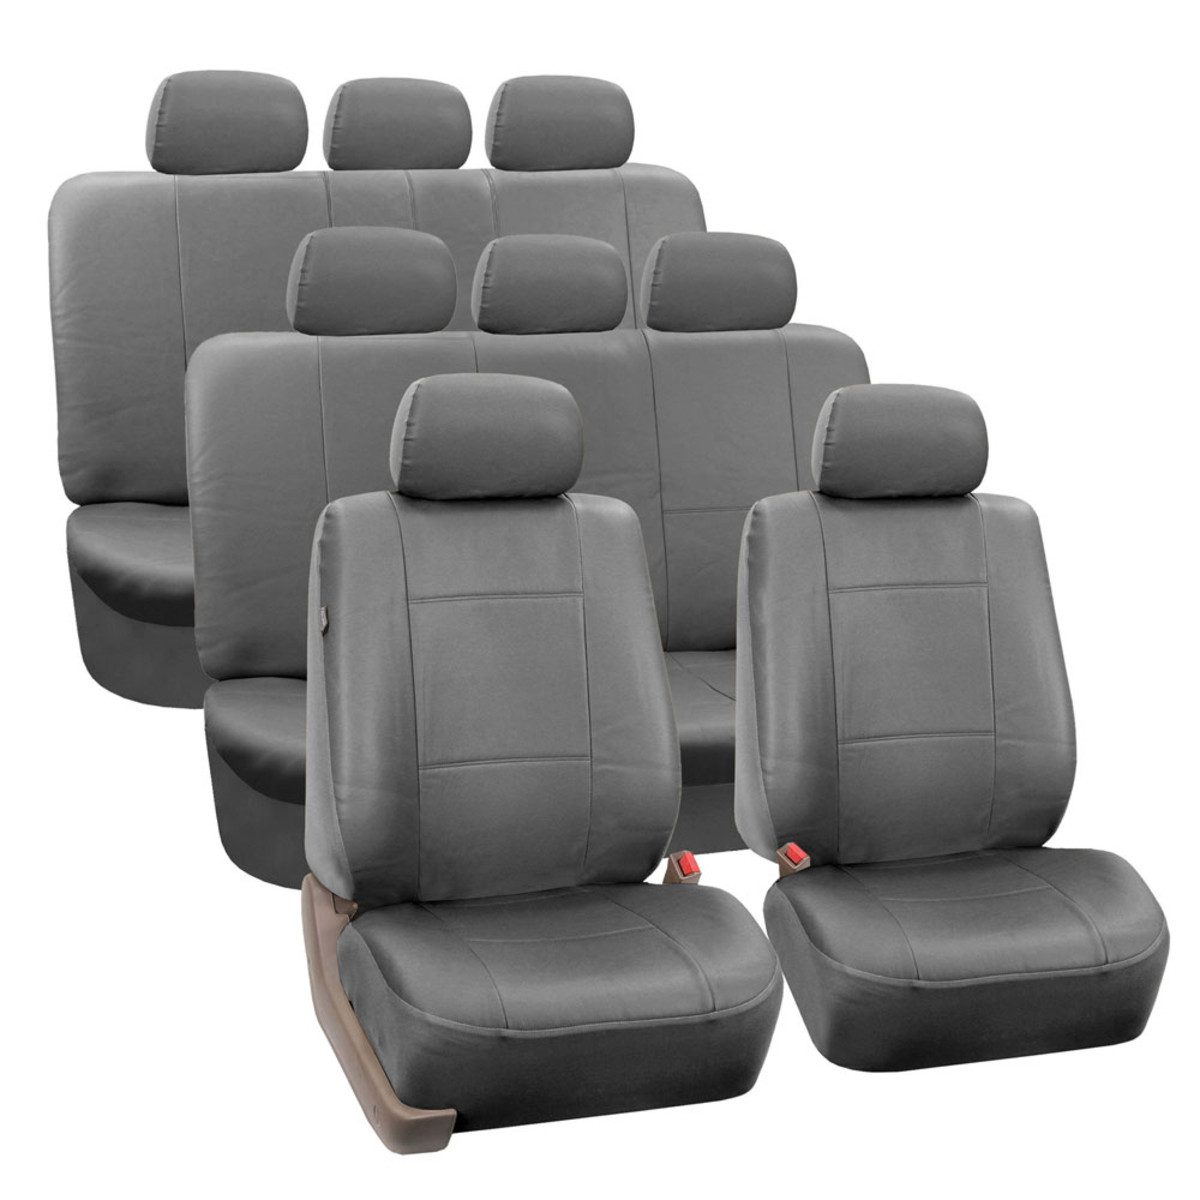 PU002128SOLIDGRAY seat cover